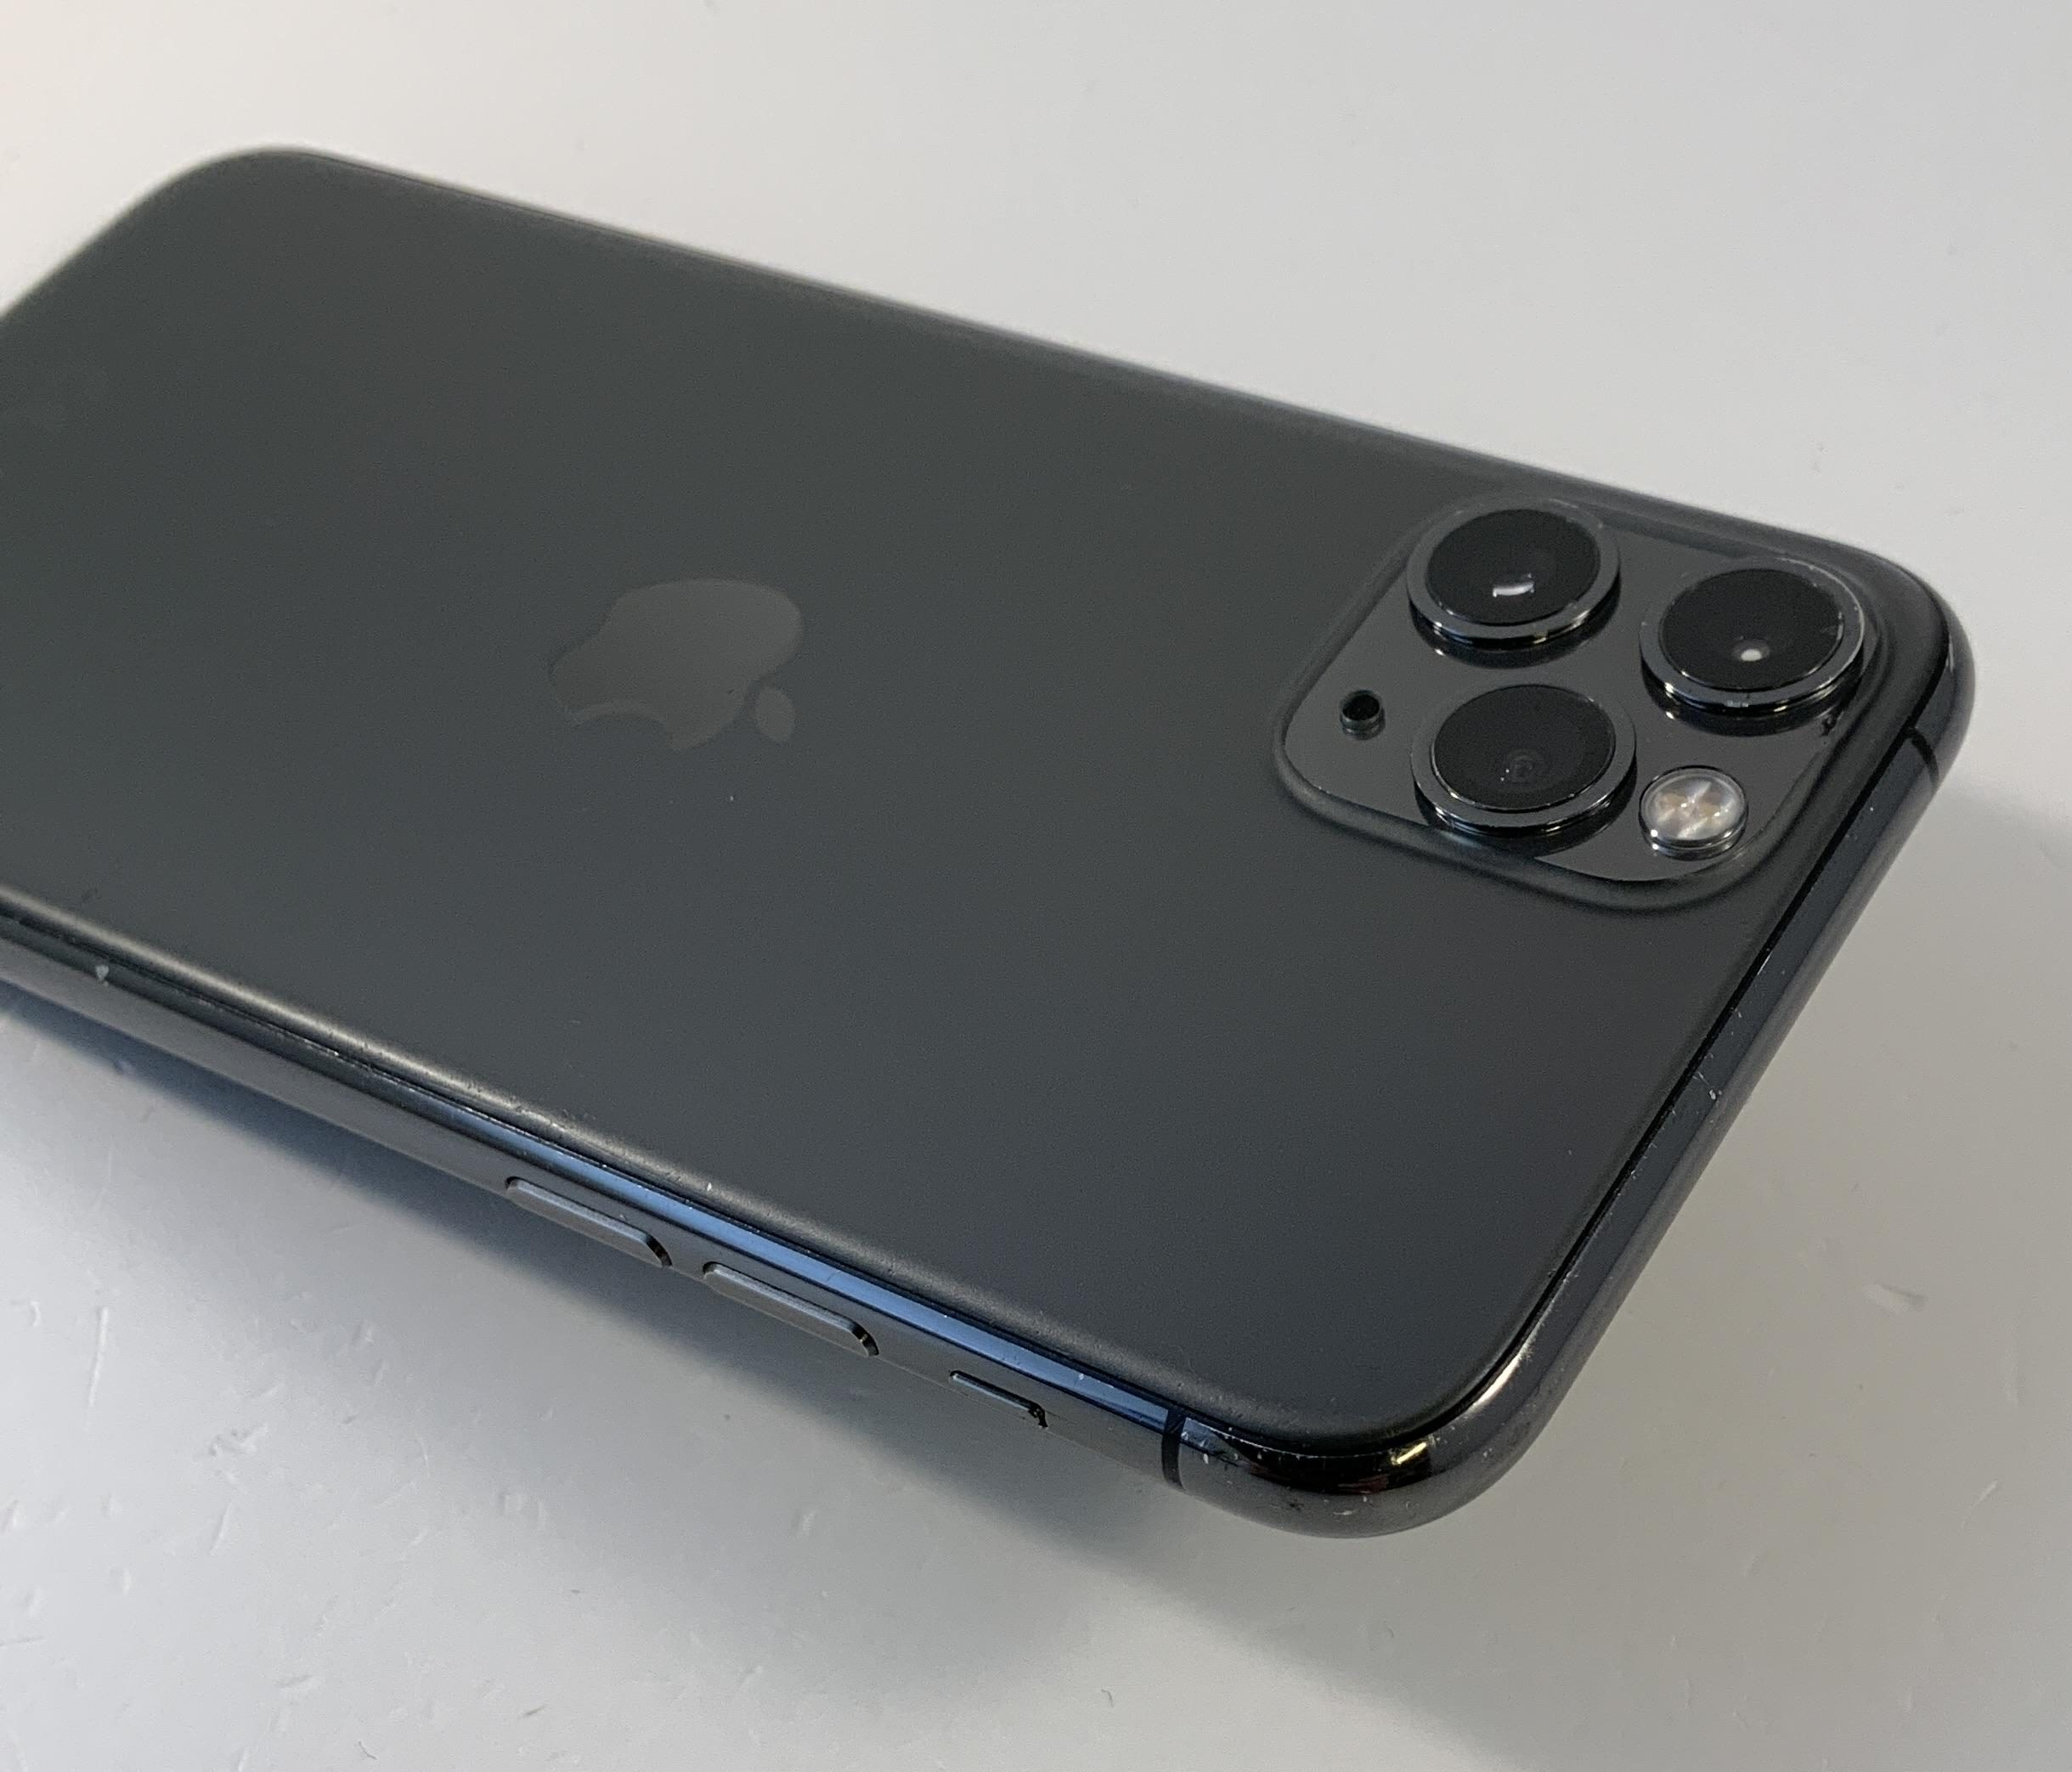 iPhone 11 Pro 256GB, 256GB, Space Gray, Afbeelding 3